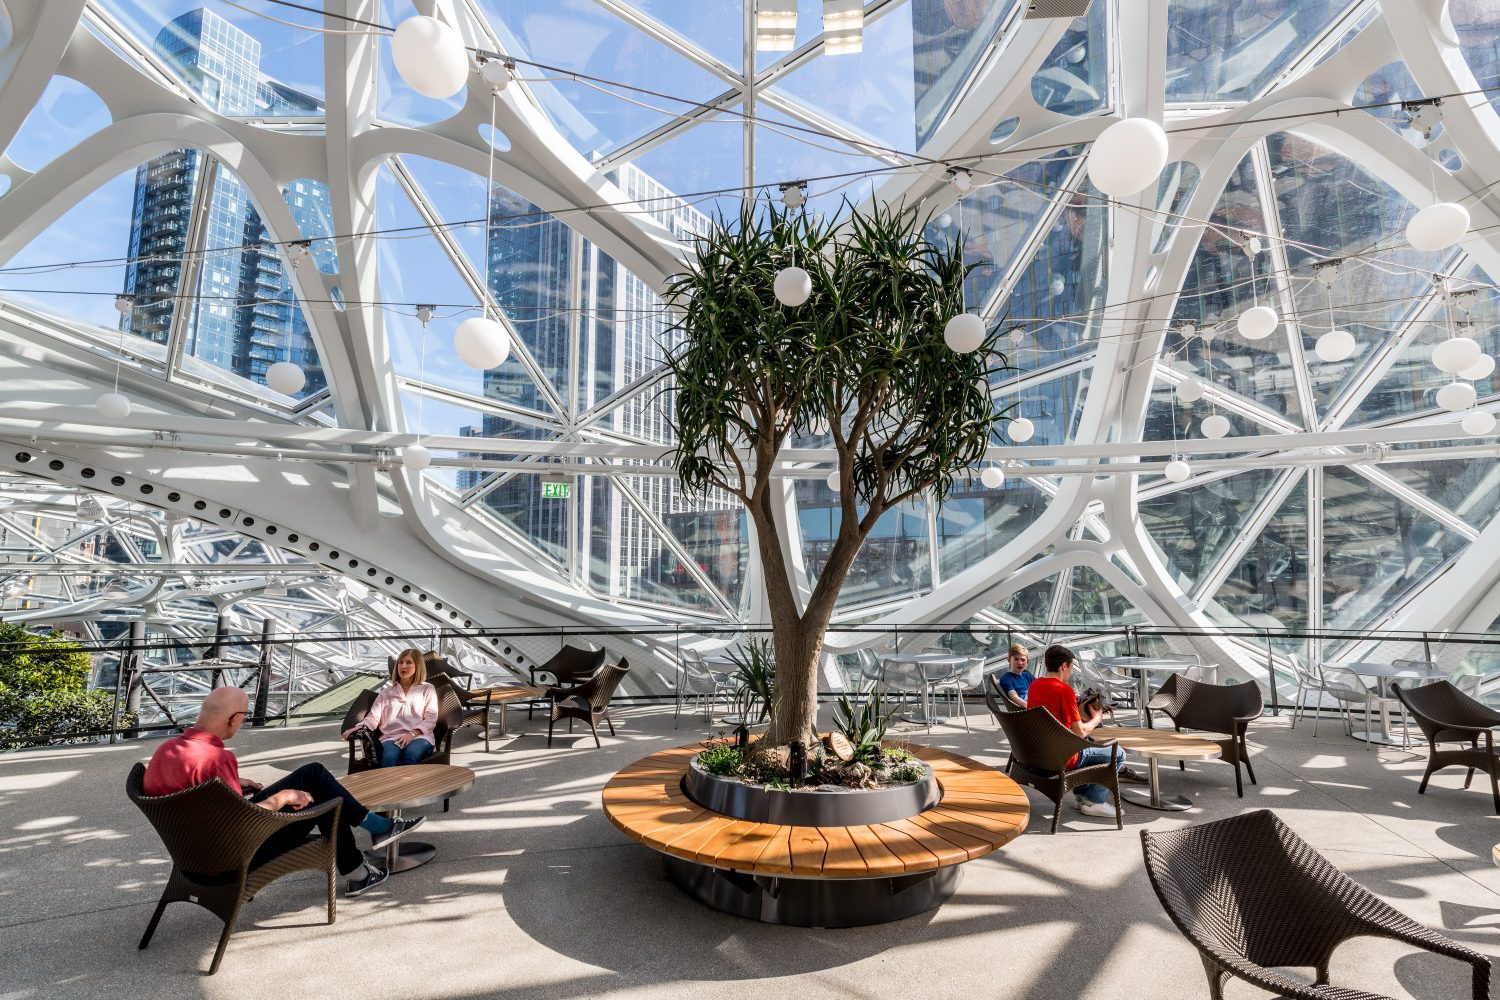 The Spheres in the New Amazon Headquarters